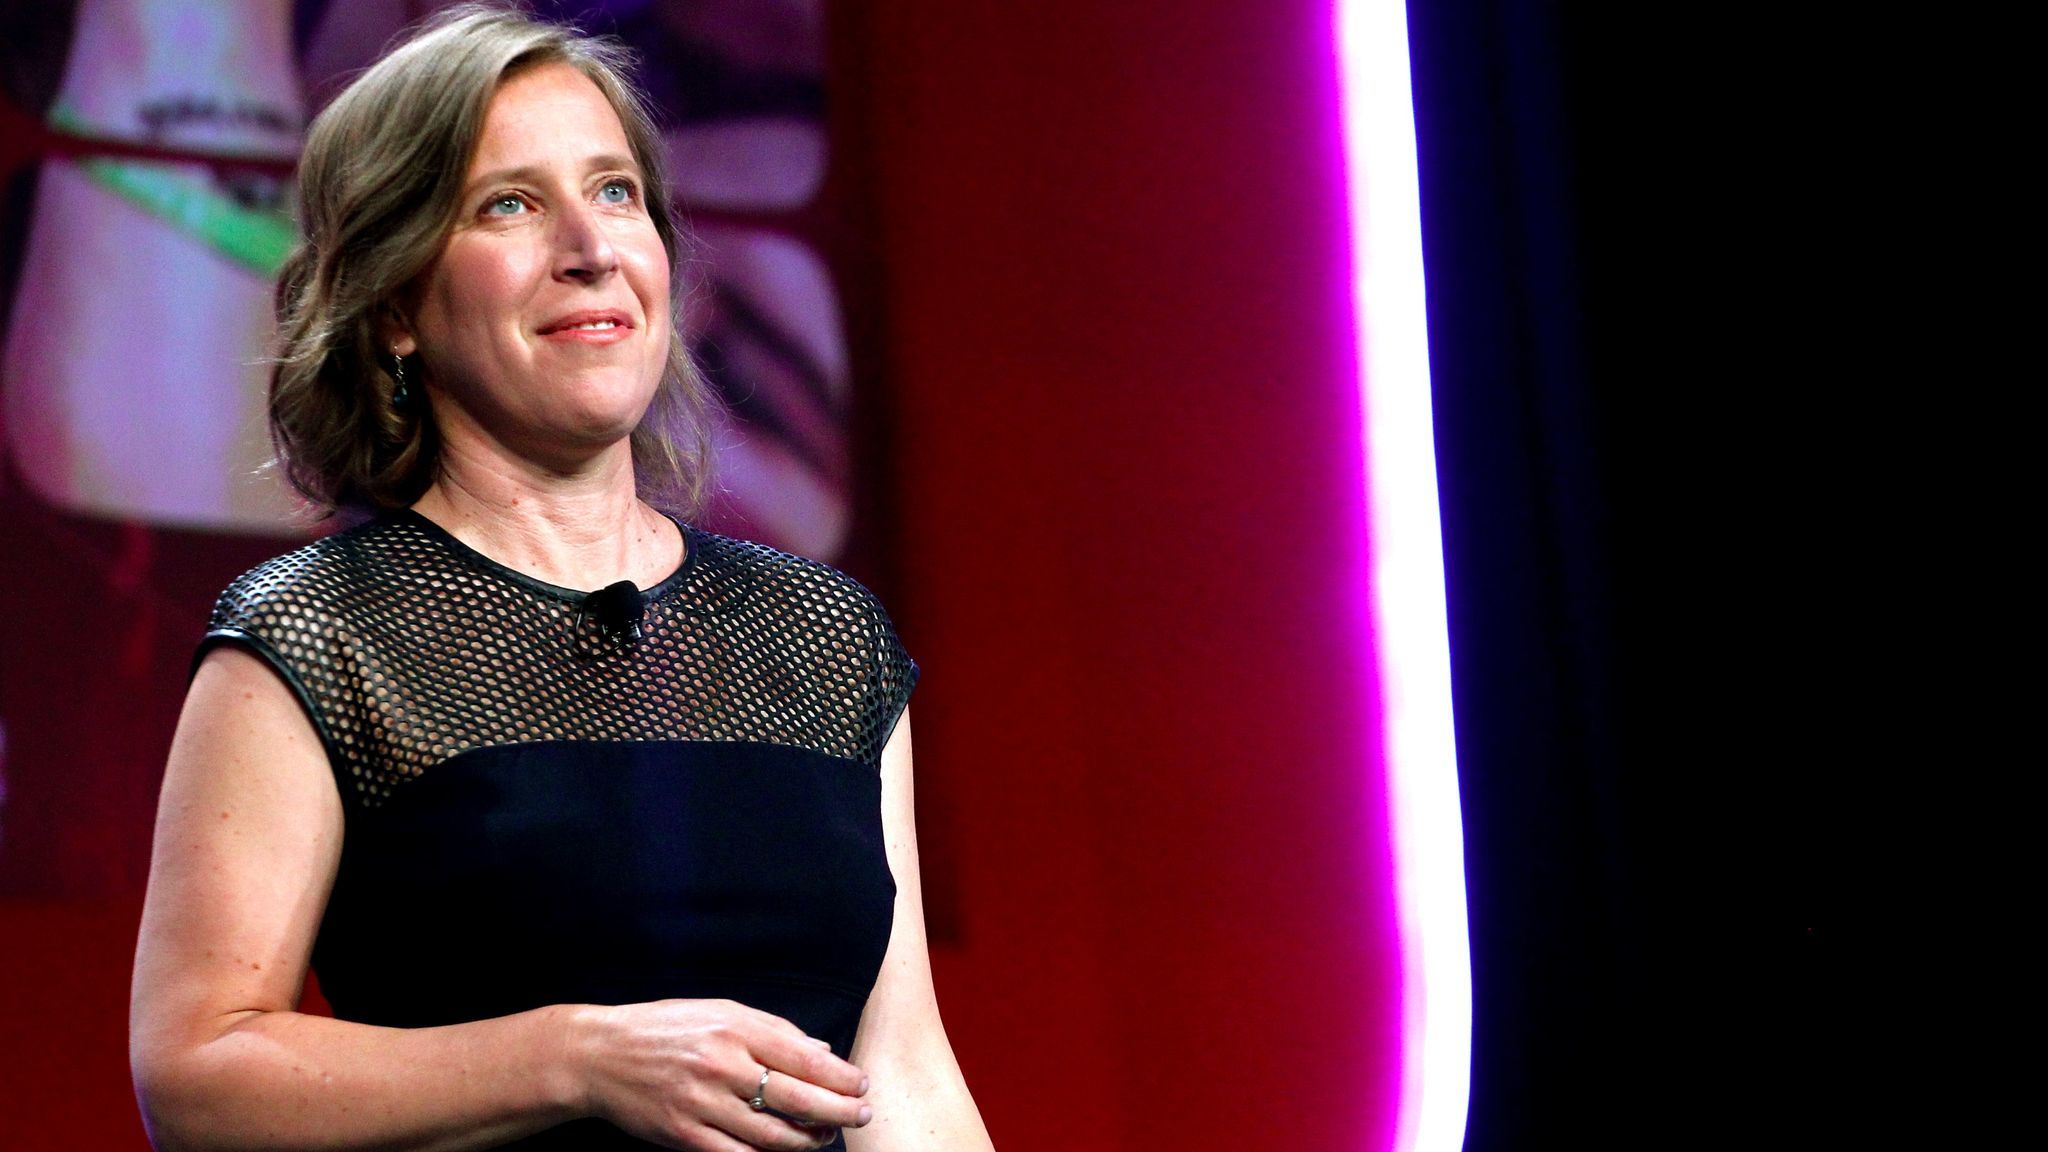 YouTube CEO Susan Wojcicki has been a vocal proponent of diversity in the tech industry. Above, she talks at Vidcon this year.